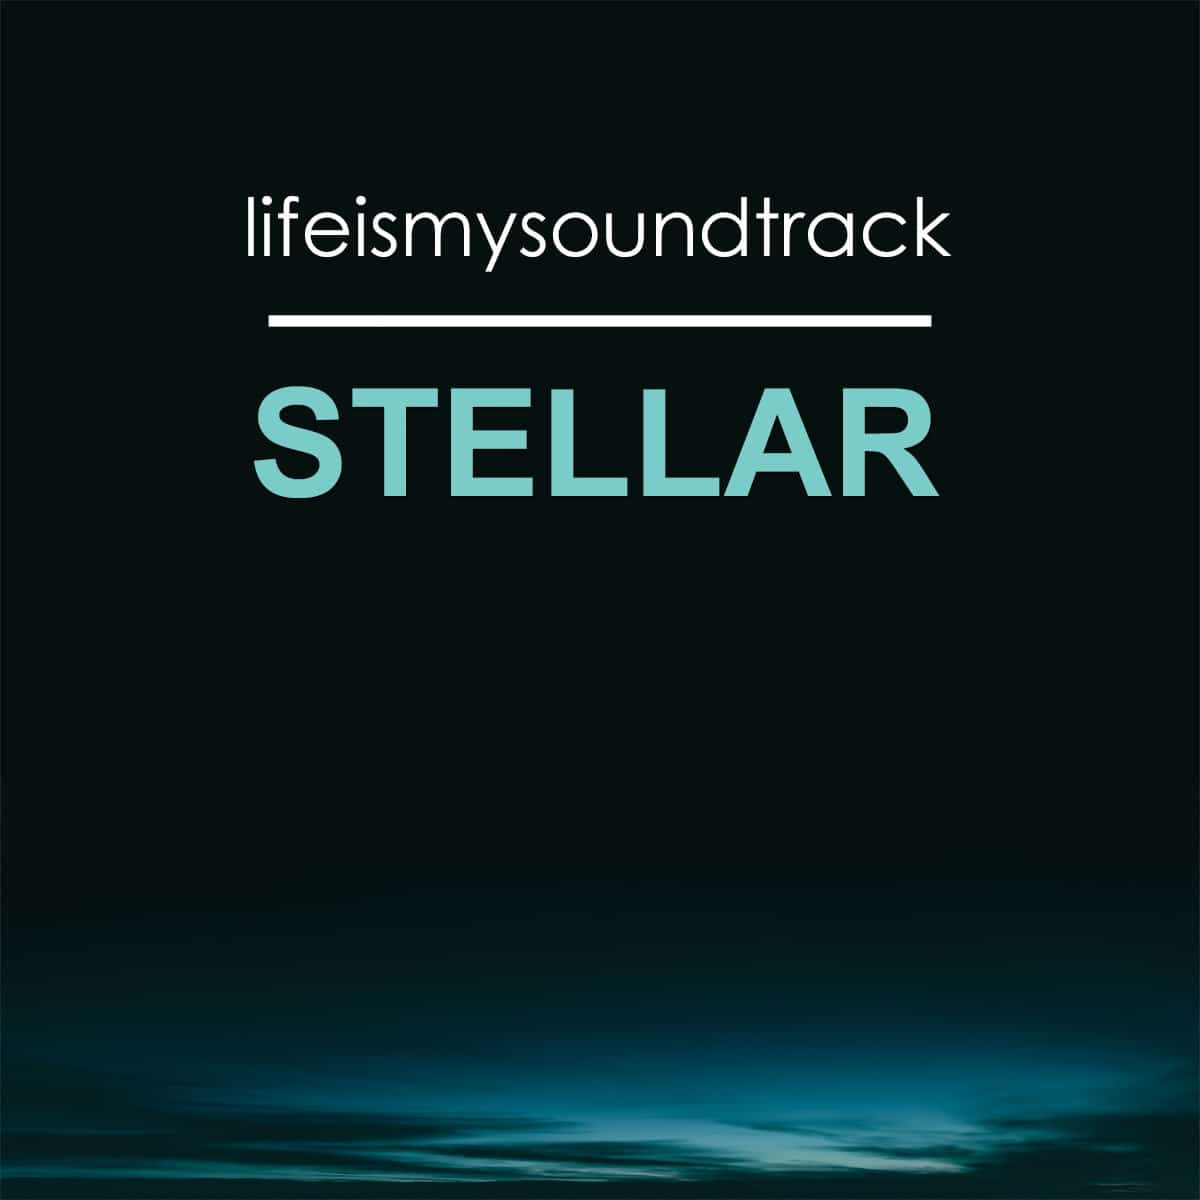 The album Stellar by Life Is My Soundtrack - A futuristic musical exploration of space travel